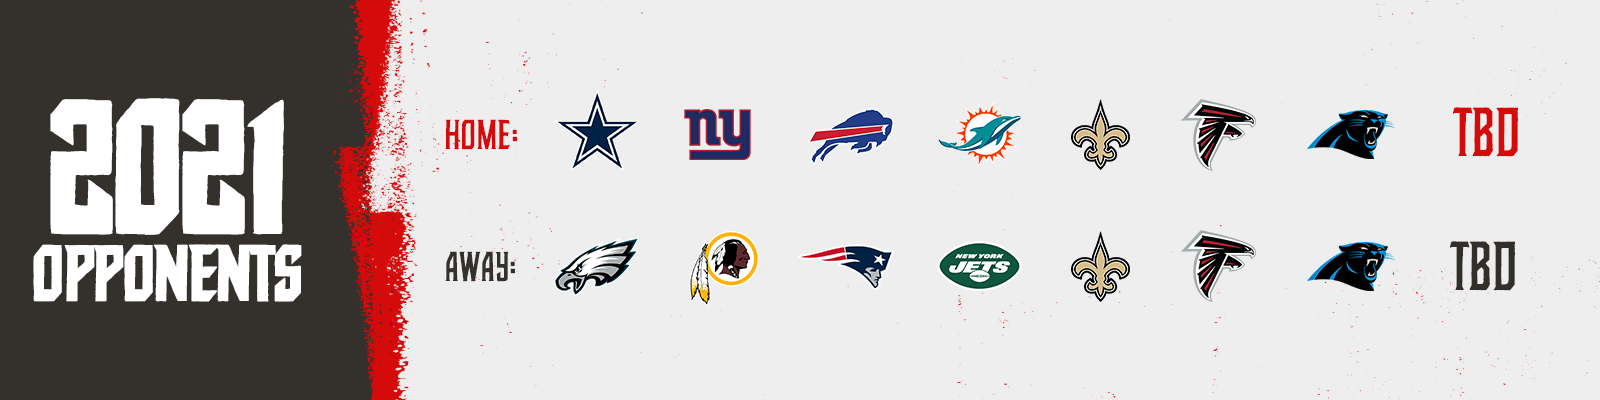 2021 Opponents - home - cowboys, giants, bills, dolphins, saints, falcons, panthers, tbd away- eagles, redskins, patriots, jets, saints, falcons, panthers, tbd